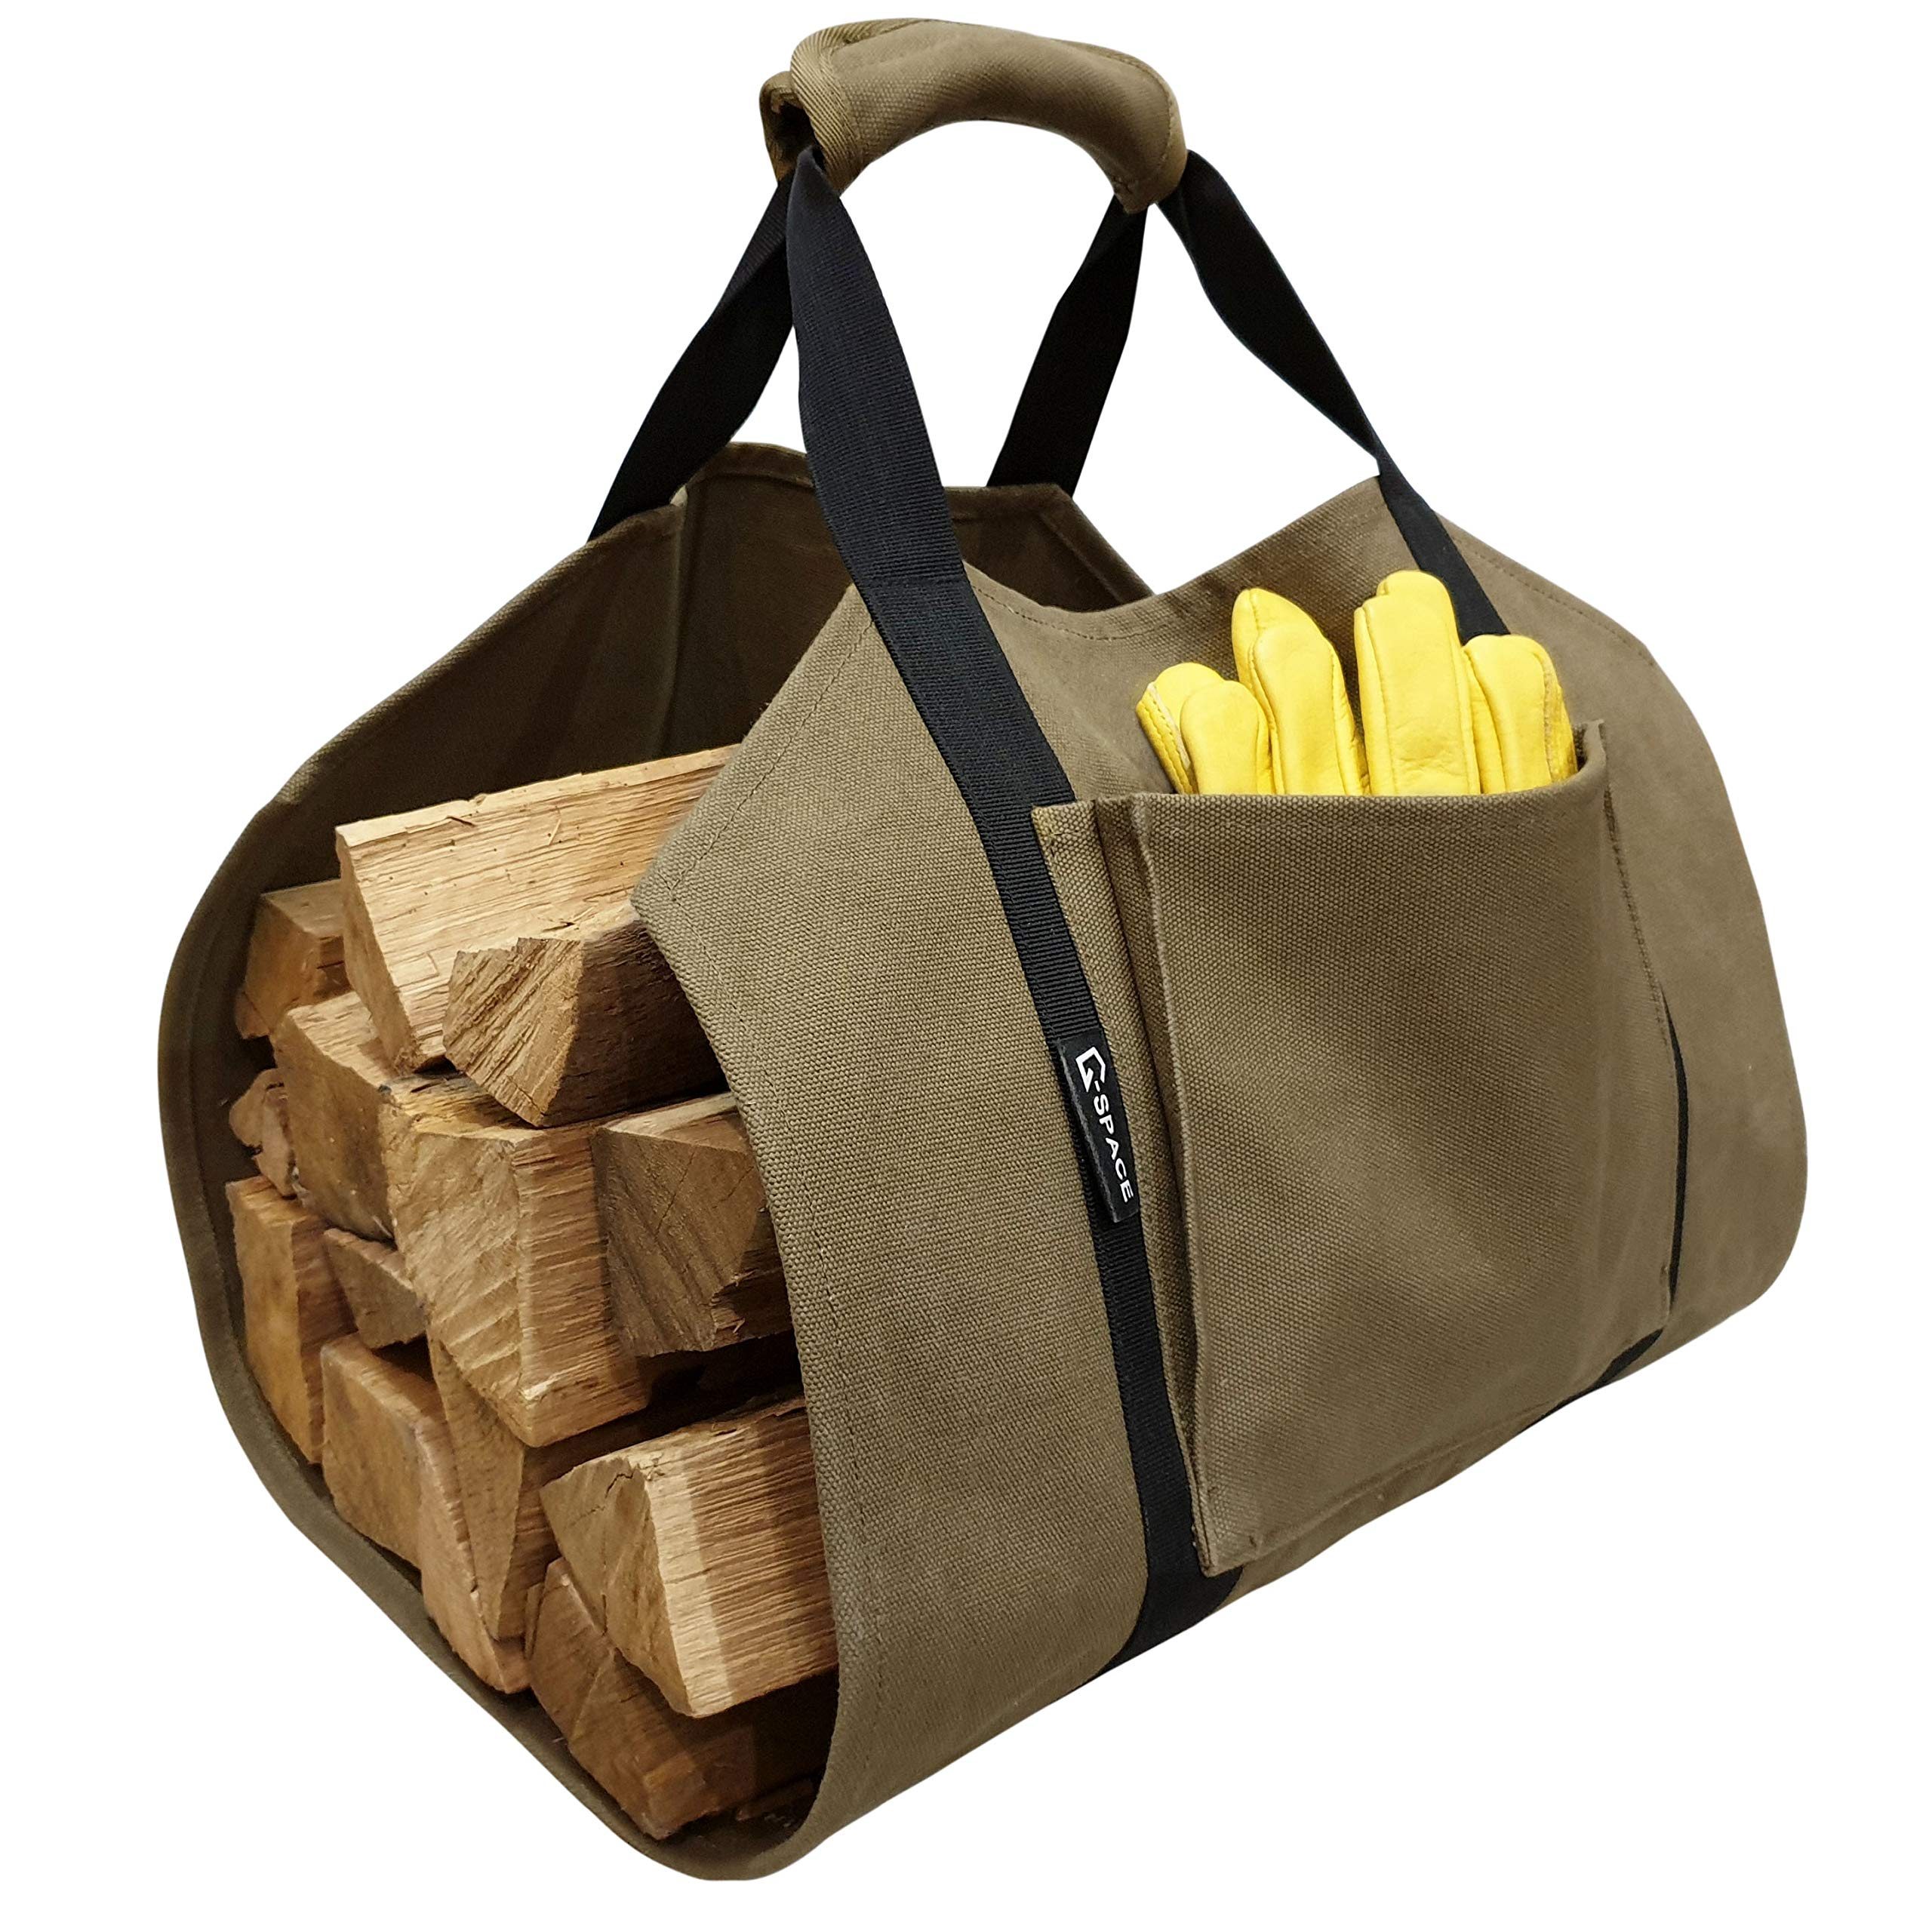 Log Carrier - Canvas firewood Carrier Bag - 20oz Waxed Canvas firewood Tote Bag - Log Bag Carrier (+Gloves) by G-SPACE